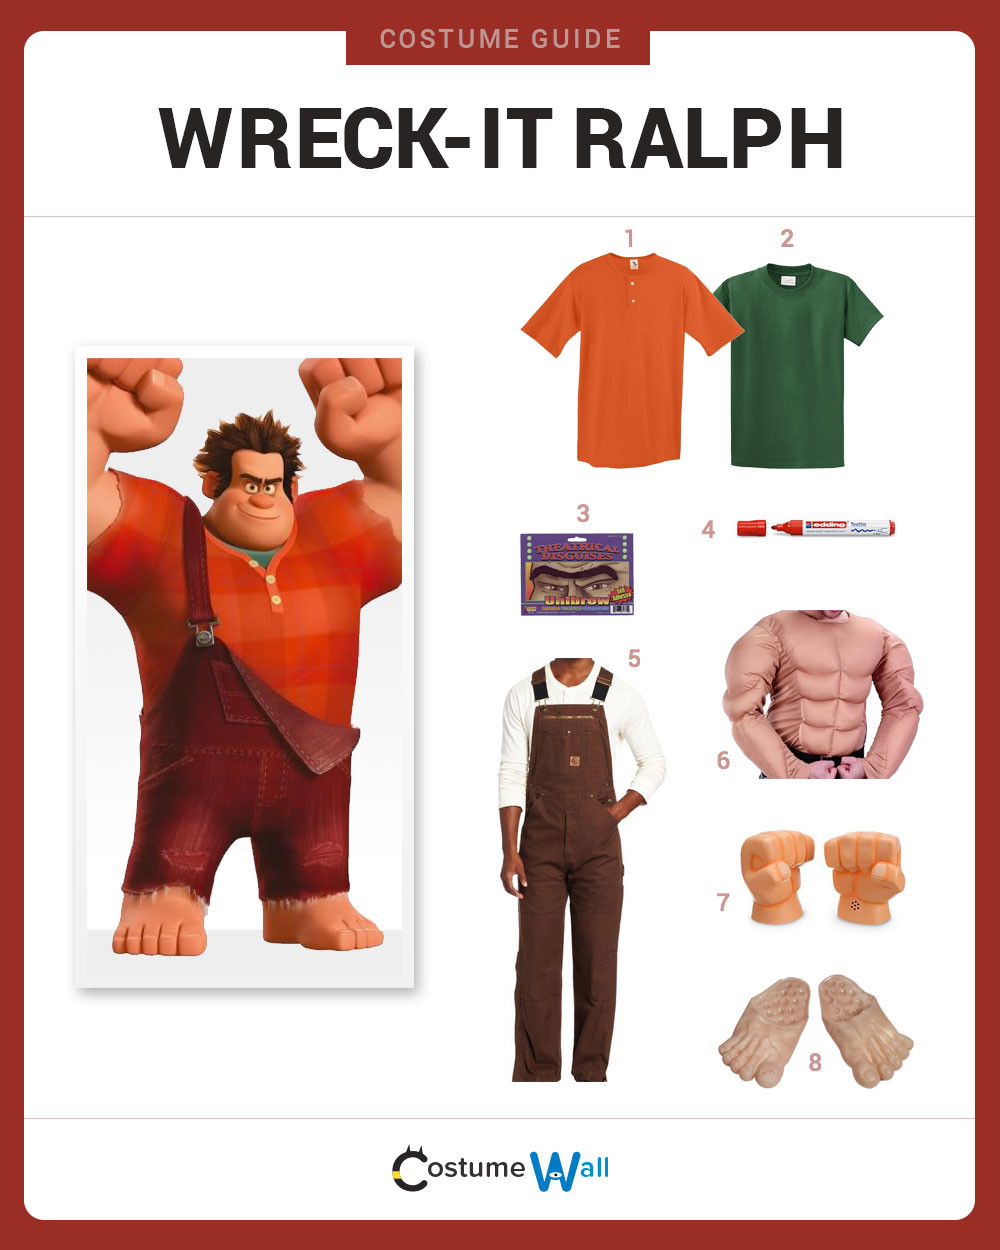 Best ideas about DIY Wreck It Ralph Costume . Save or Pin Dress Like Wreck It Ralph Costume DIY Outfit Now.